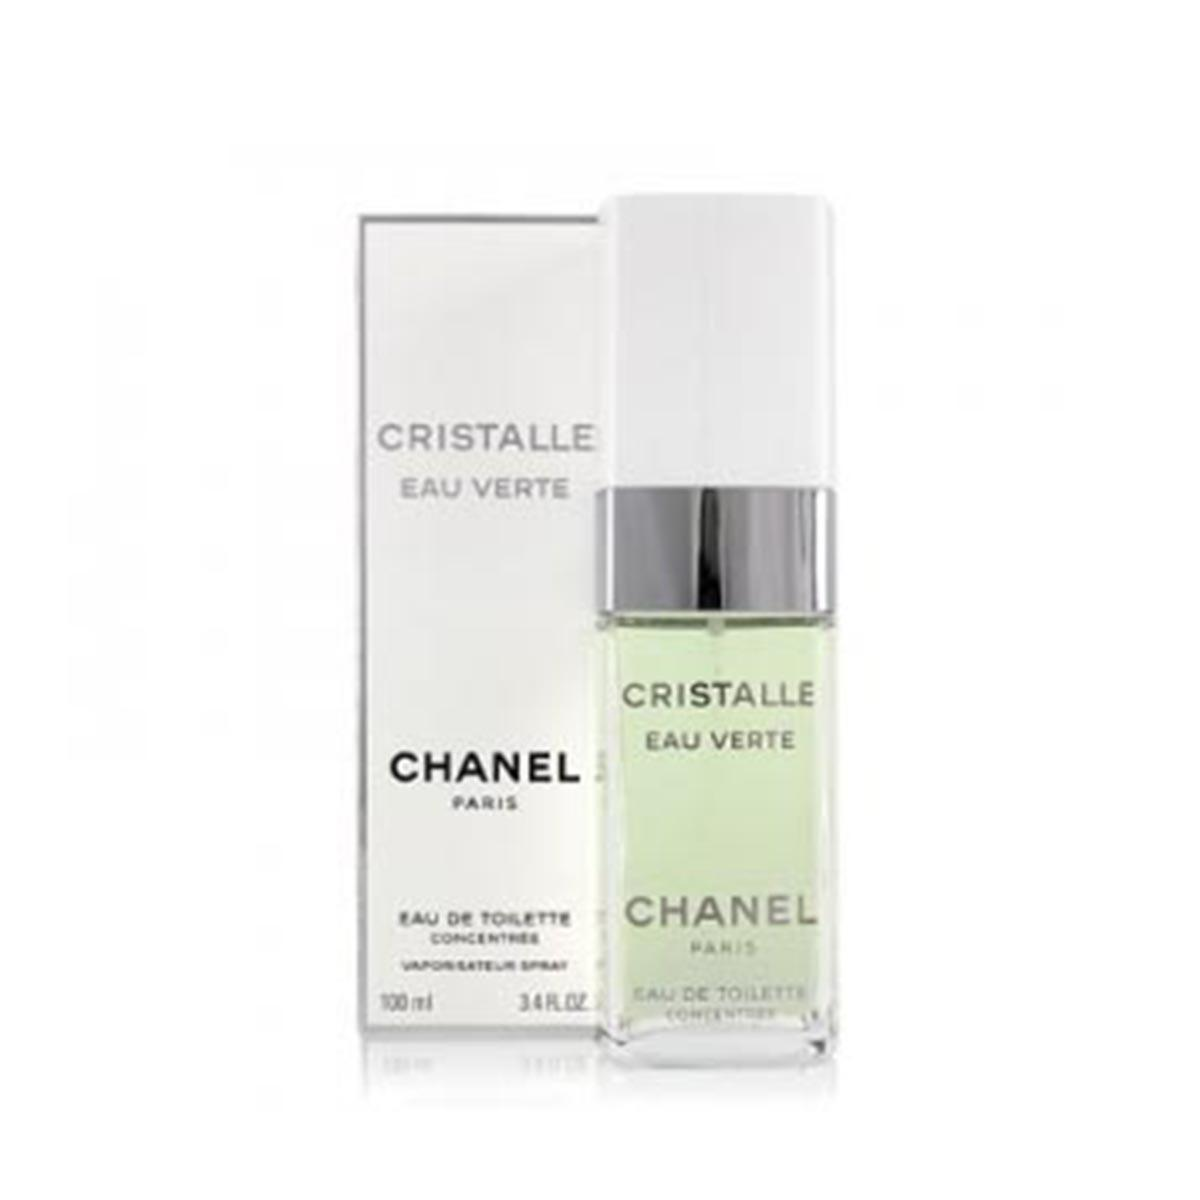 Chanel fragrances Cristalle Eau Verte Concentree 100ml